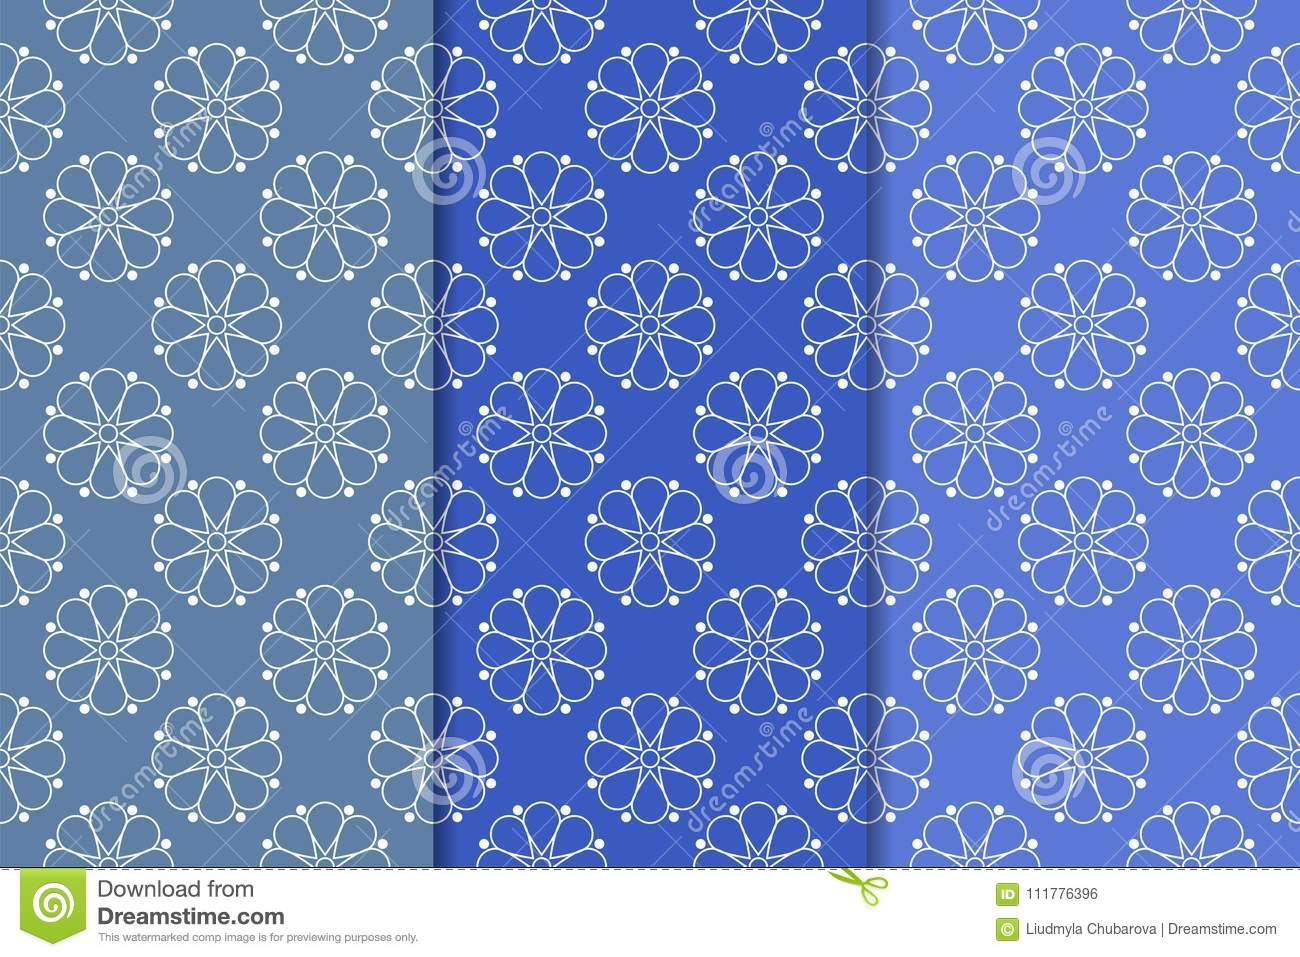 Blue floral ornaments. Set of vertical seamless patterns